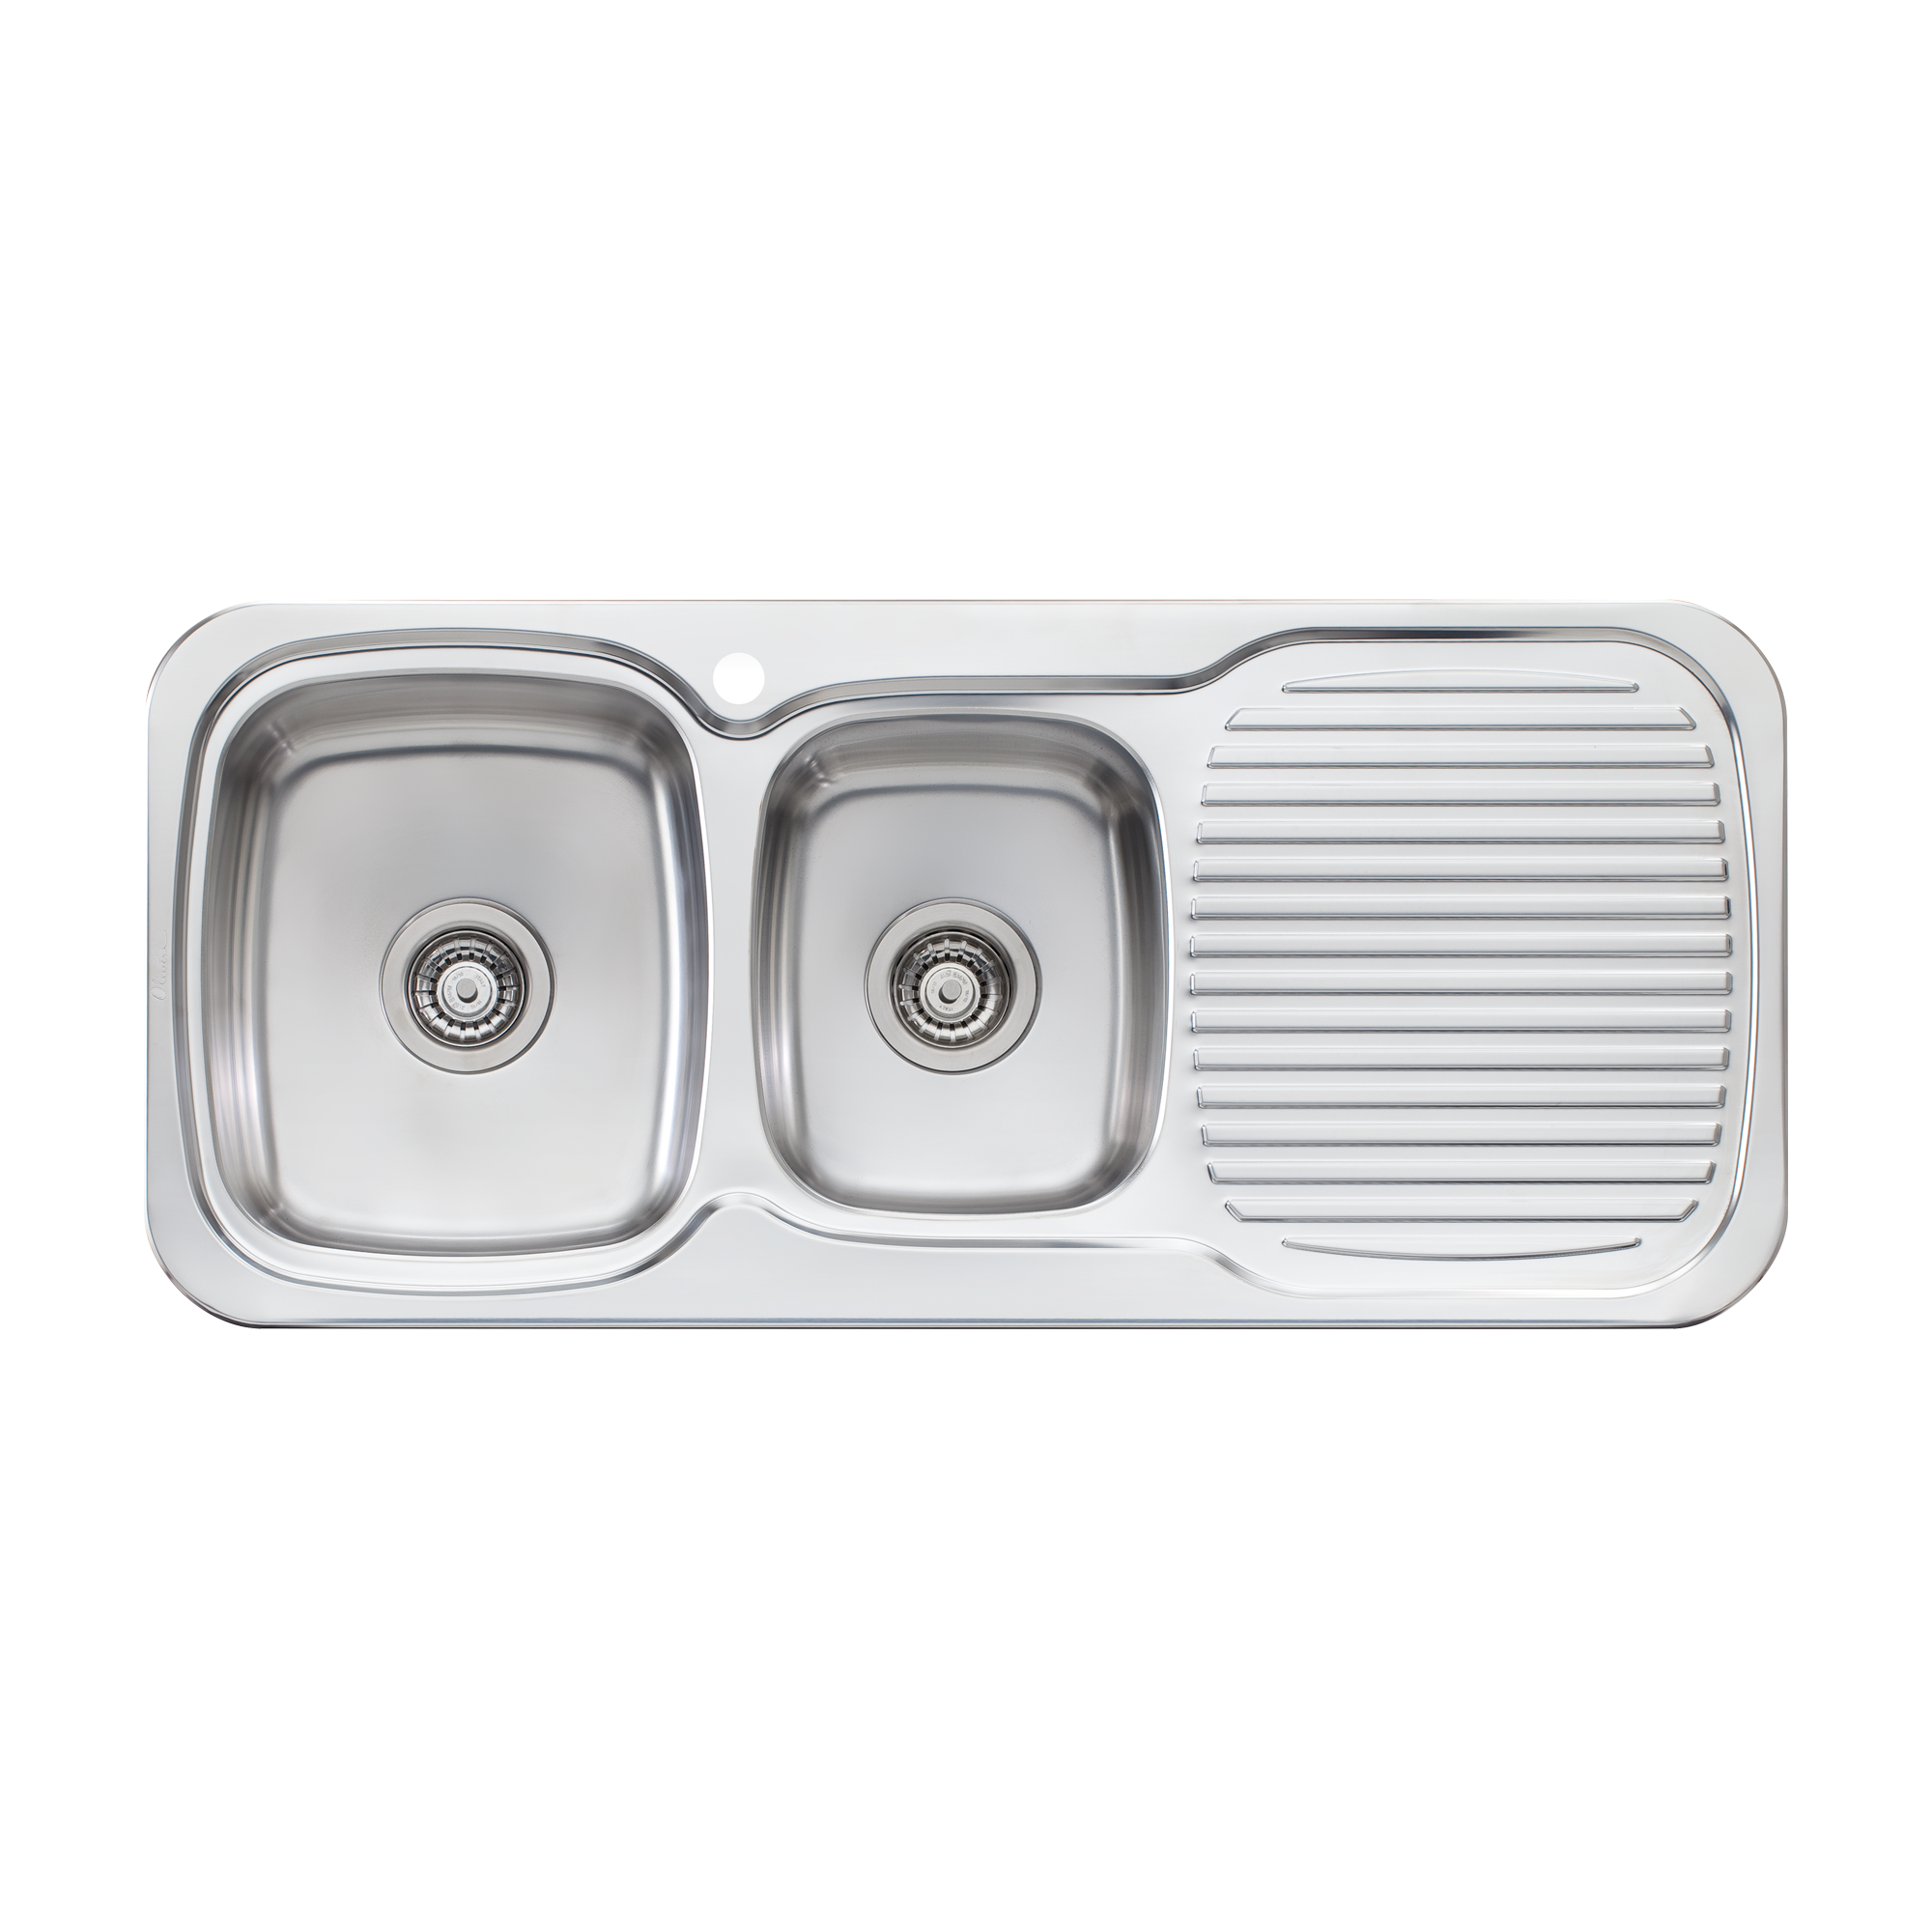 Discover Oliveri Kitchen And Laundry Solutions Sinks Taps